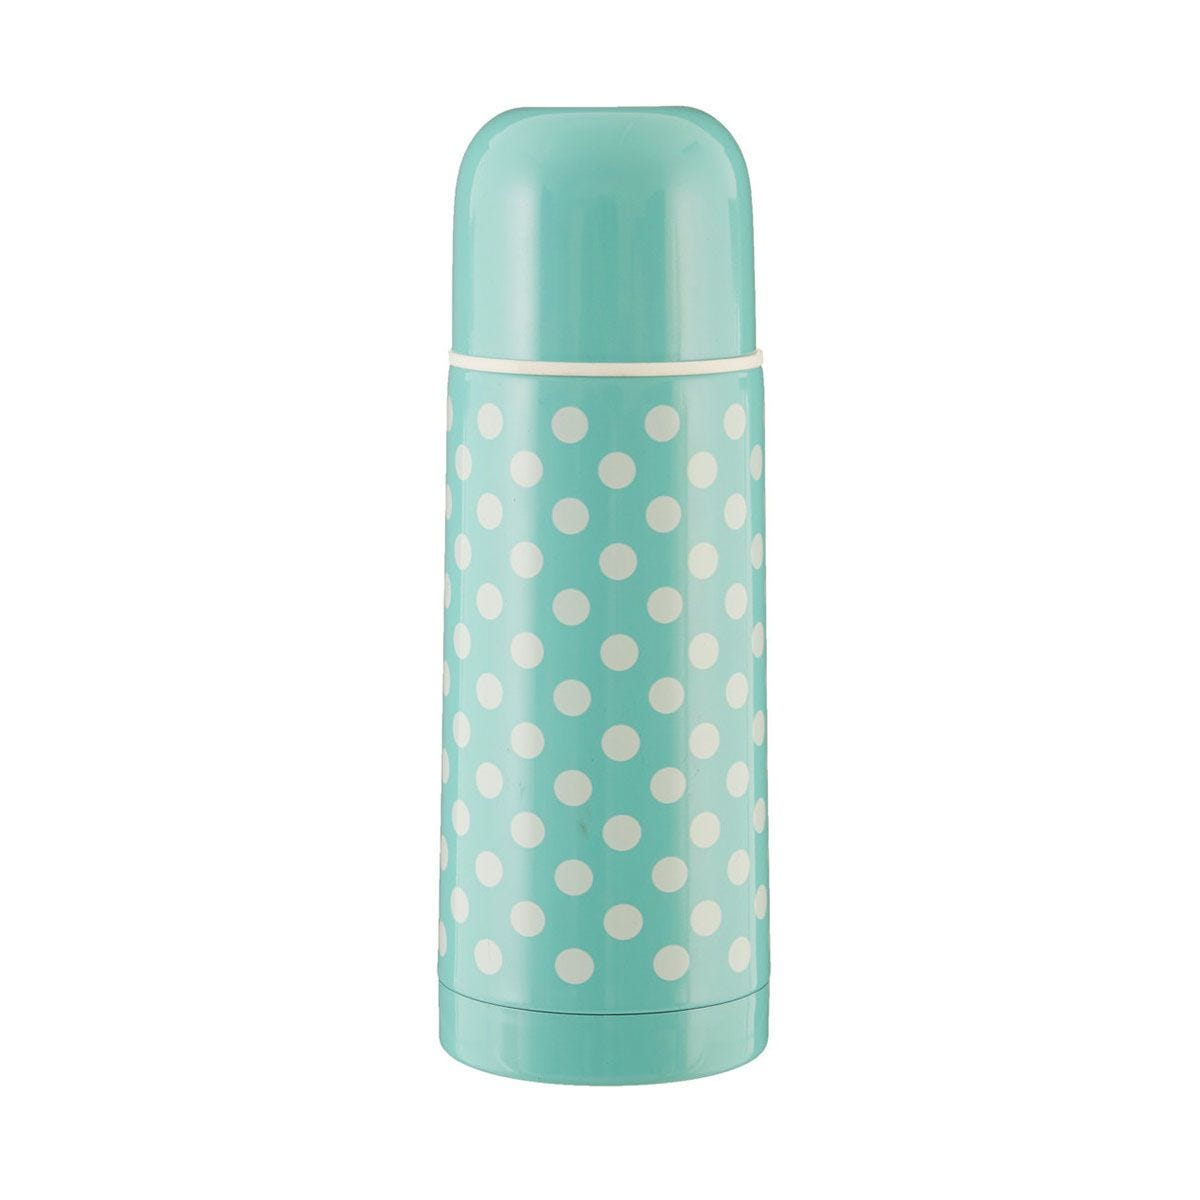 Maison By Premier Mimo Spot Vacuum Flask Double Walled 350ml - Green